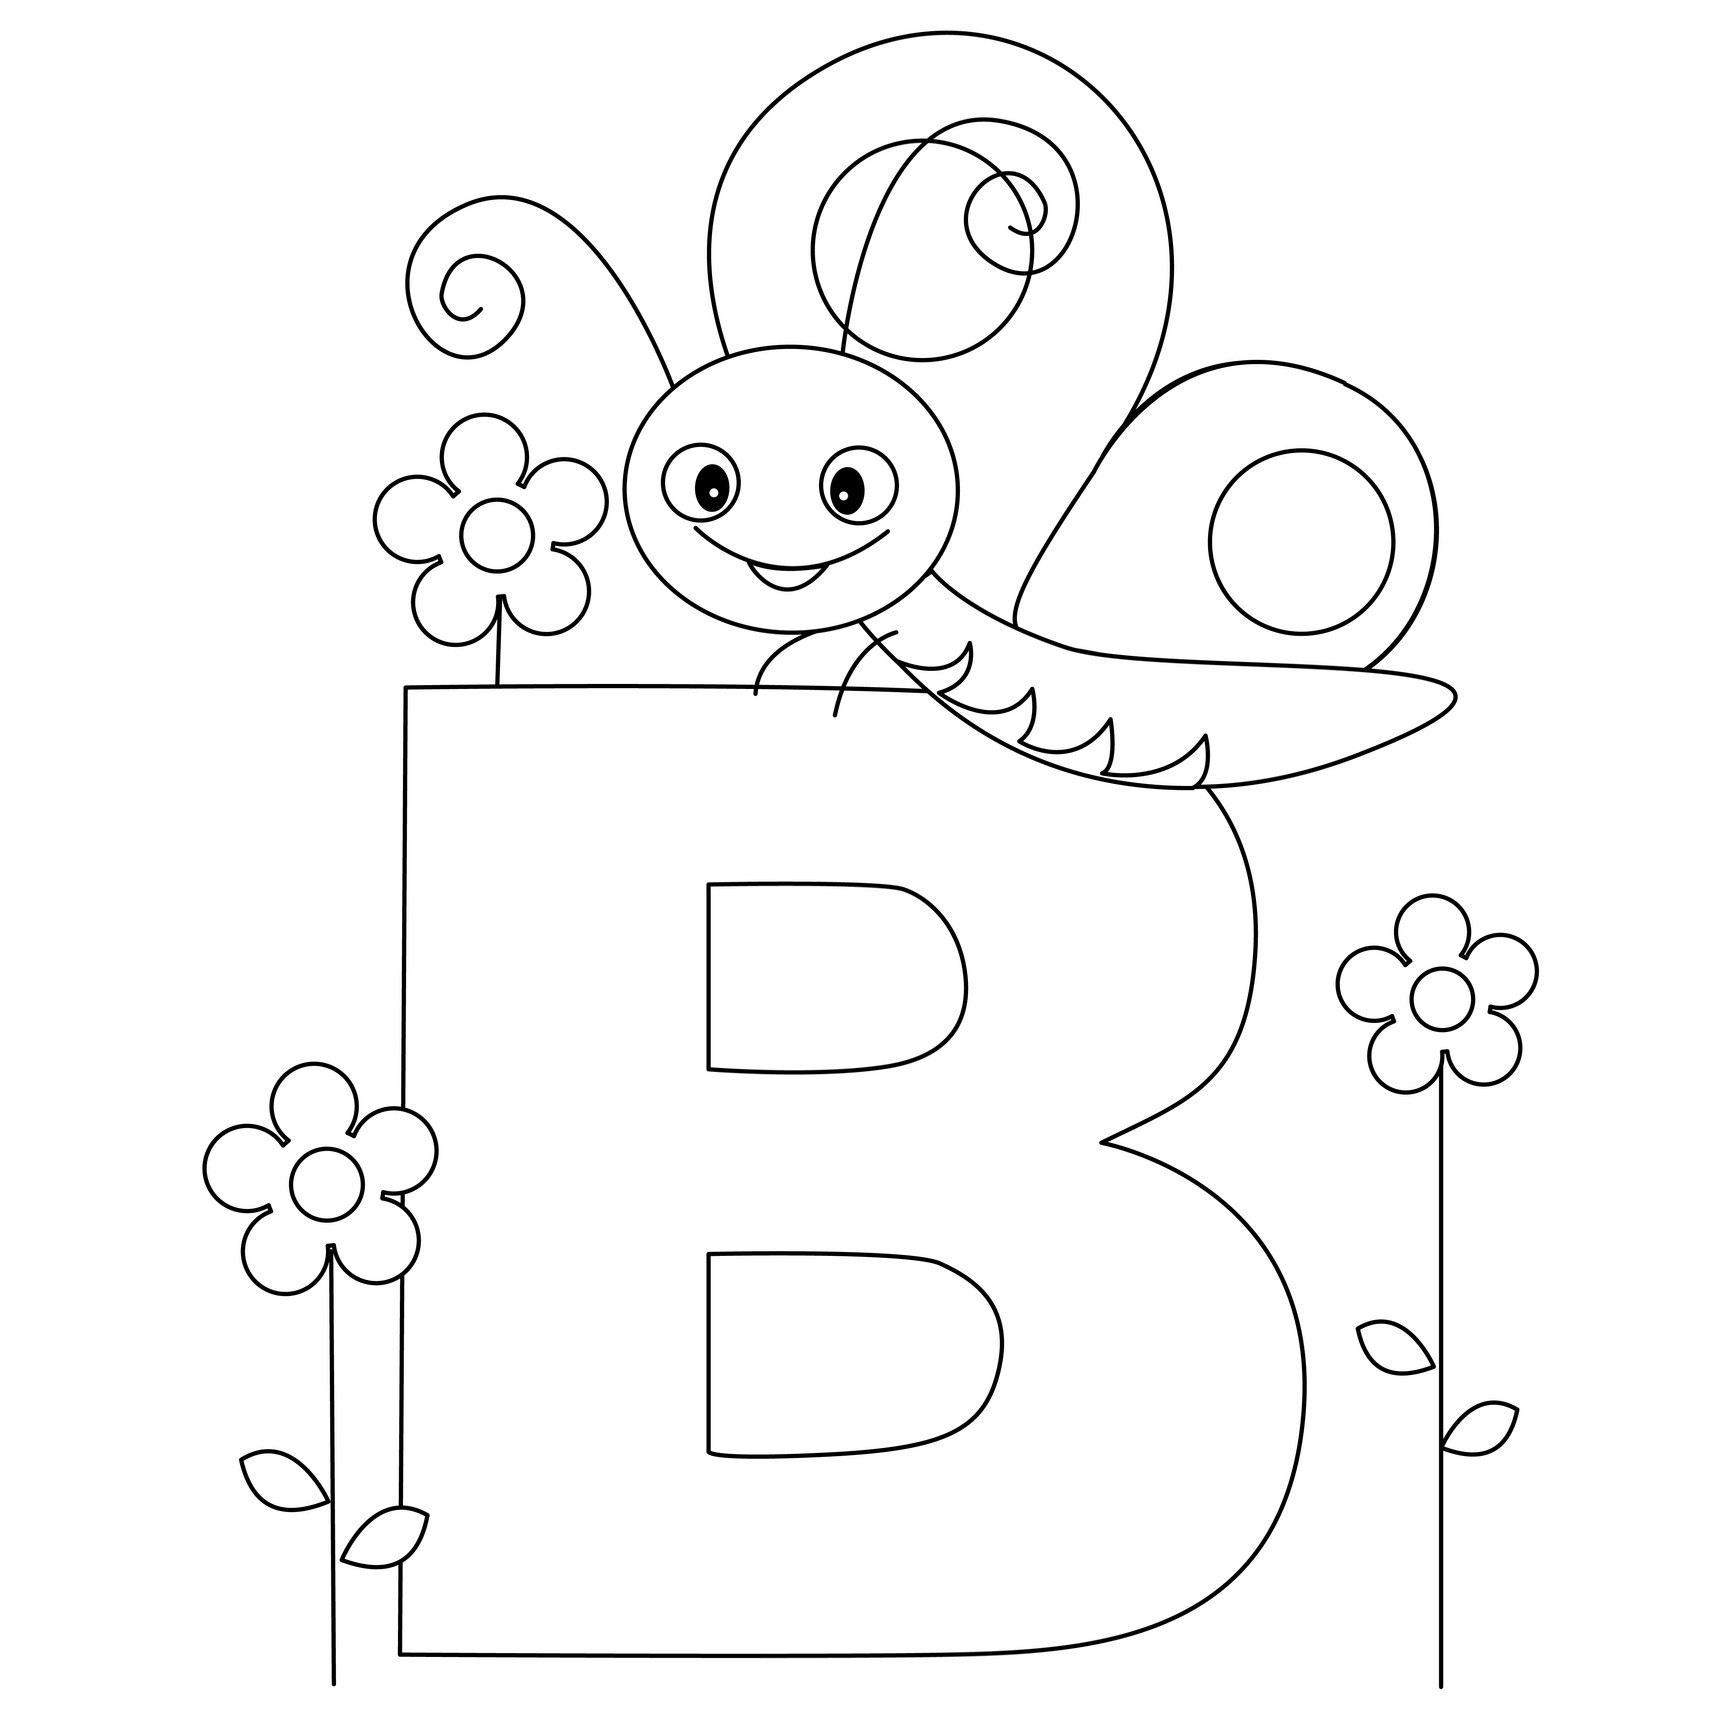 coloring pages letter b - photo#13